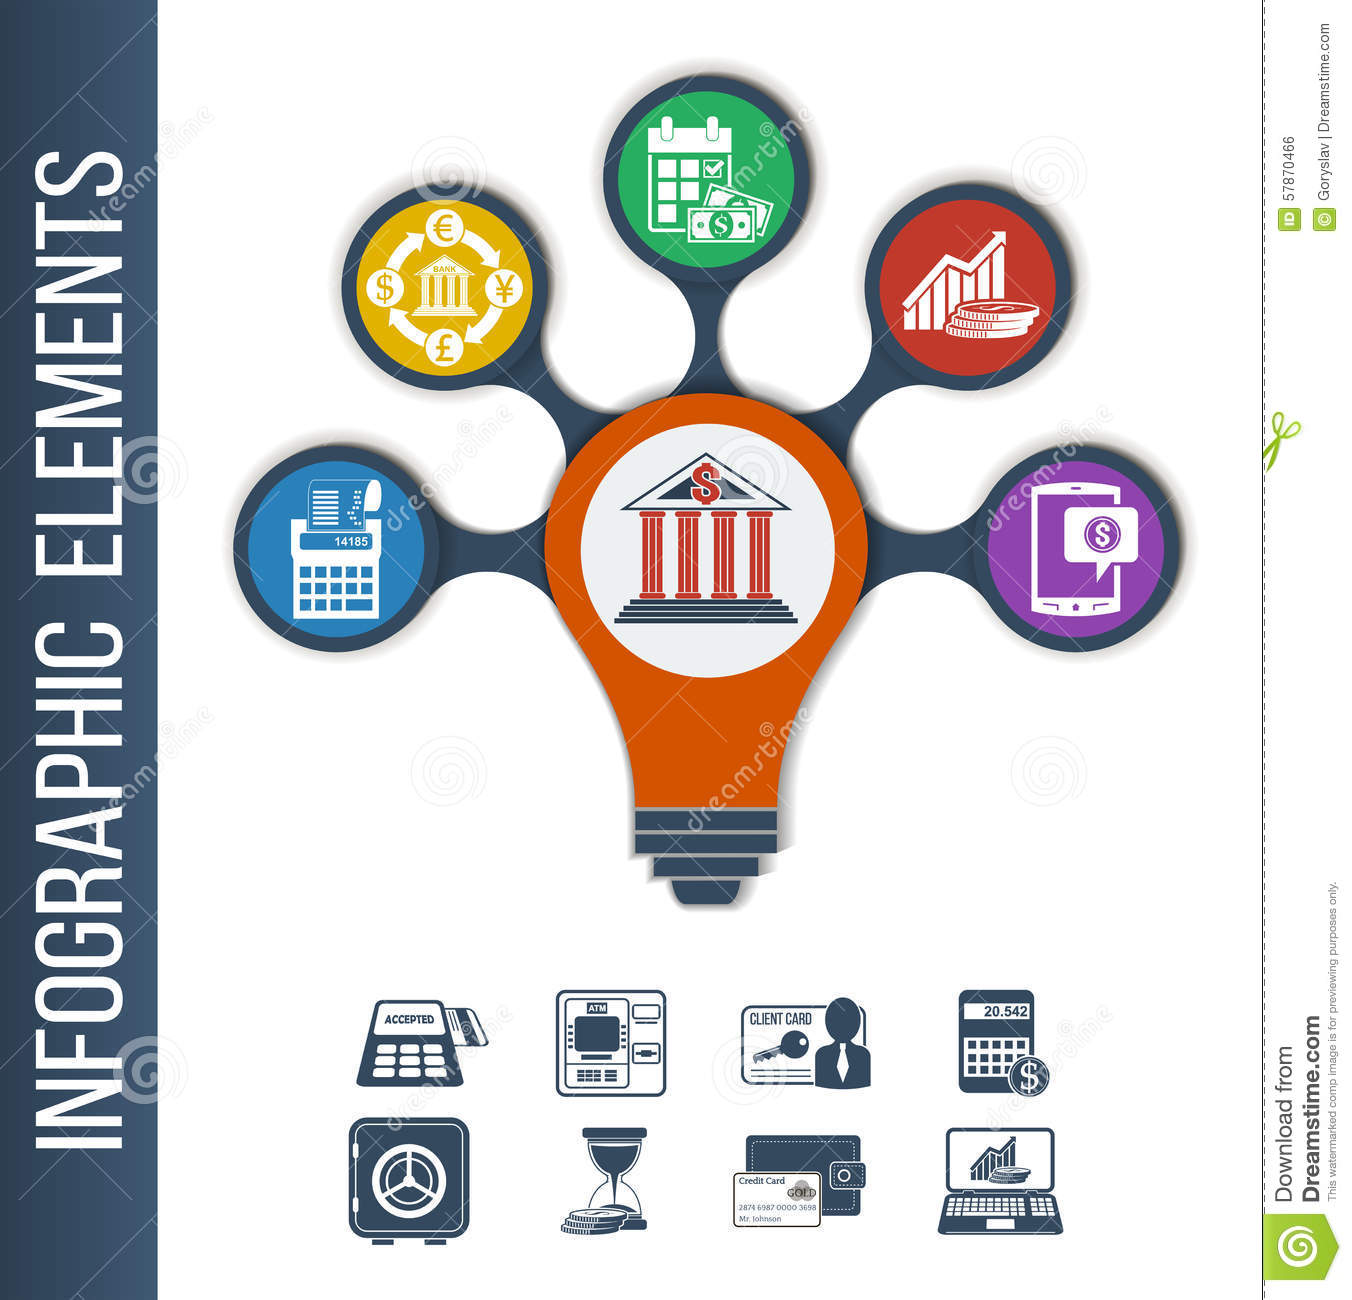 Financial Services: Infographic Template For Different Bank & Financial